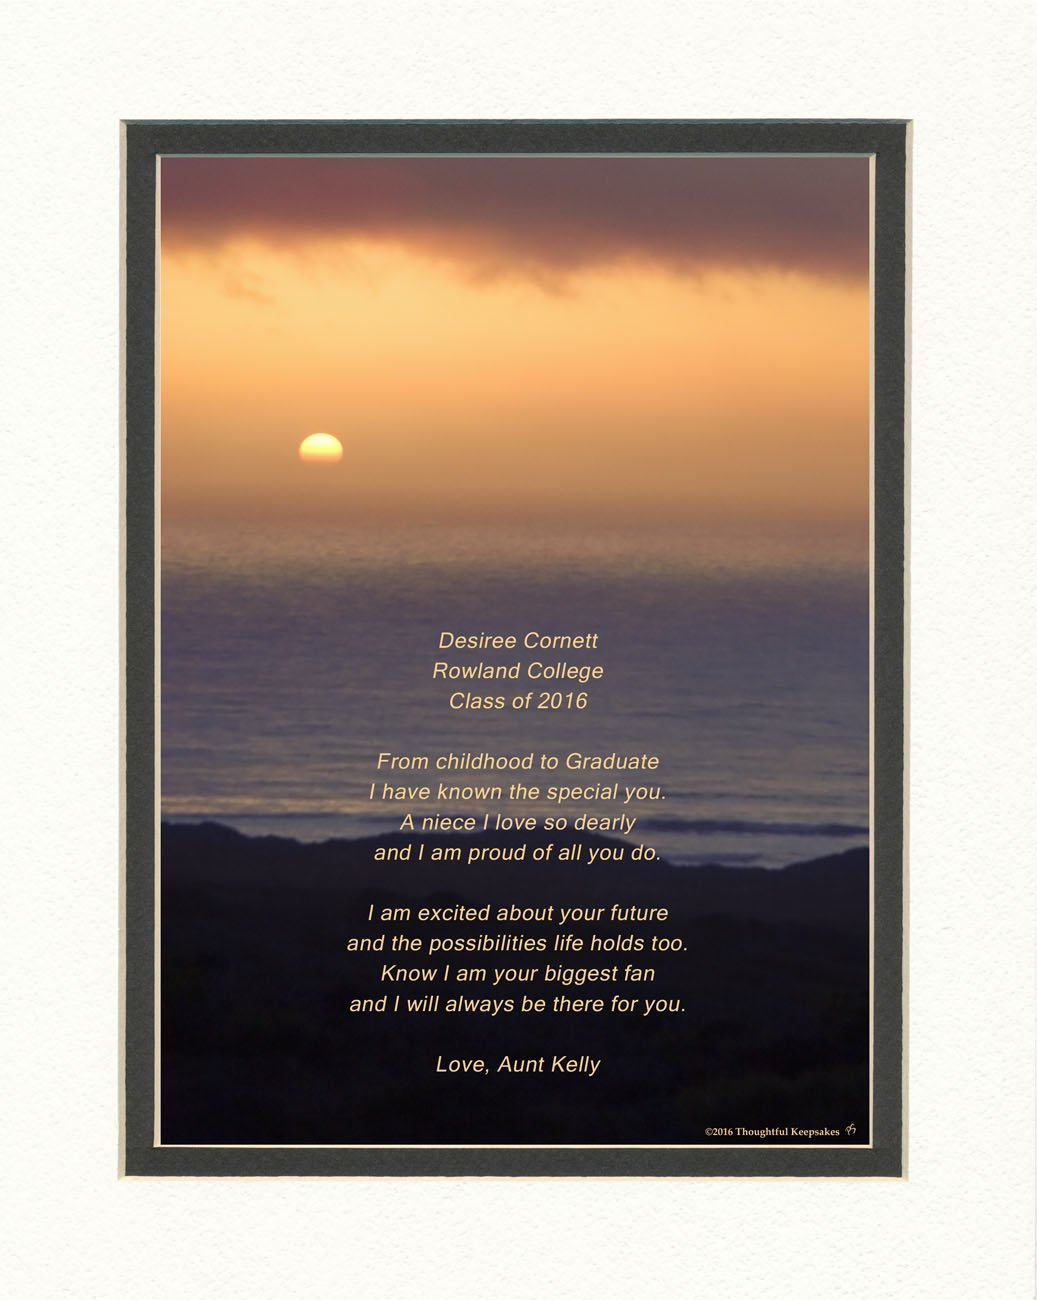 Personalized Niece Graduation Gift with ''From Childhood to Graduate'' Poem, Ocean Sunset Photo, 8x10 Double Matted. Special Keepsake Graduation Gifts for Niece